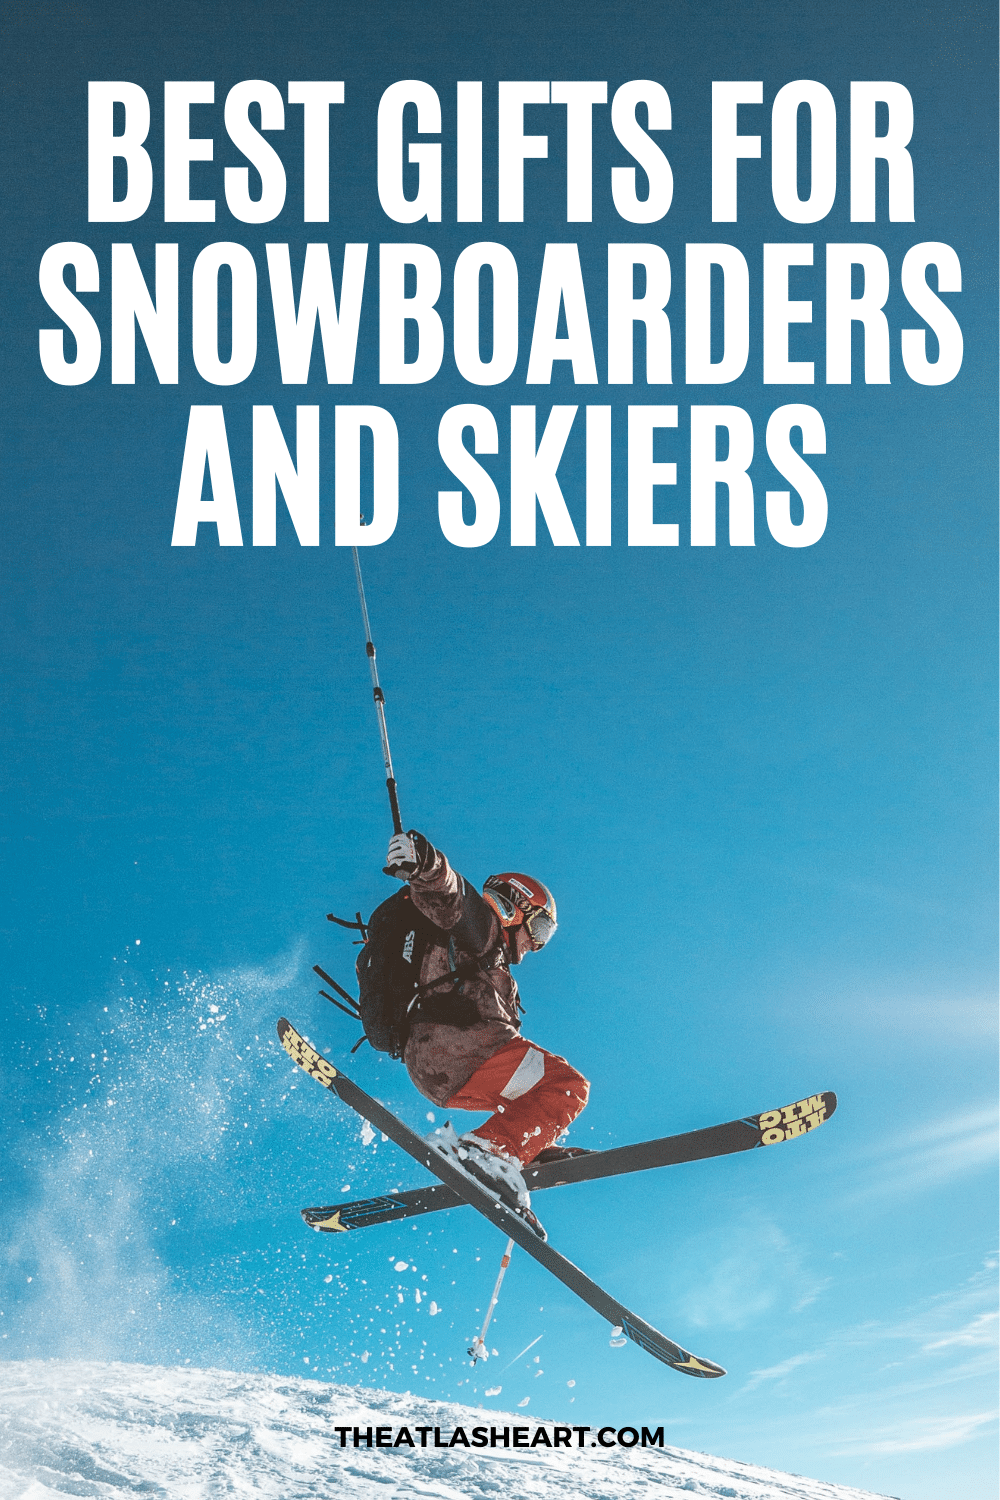 27 Best Gifts for Snowboarders and Skiers (That They'll Actually Use)